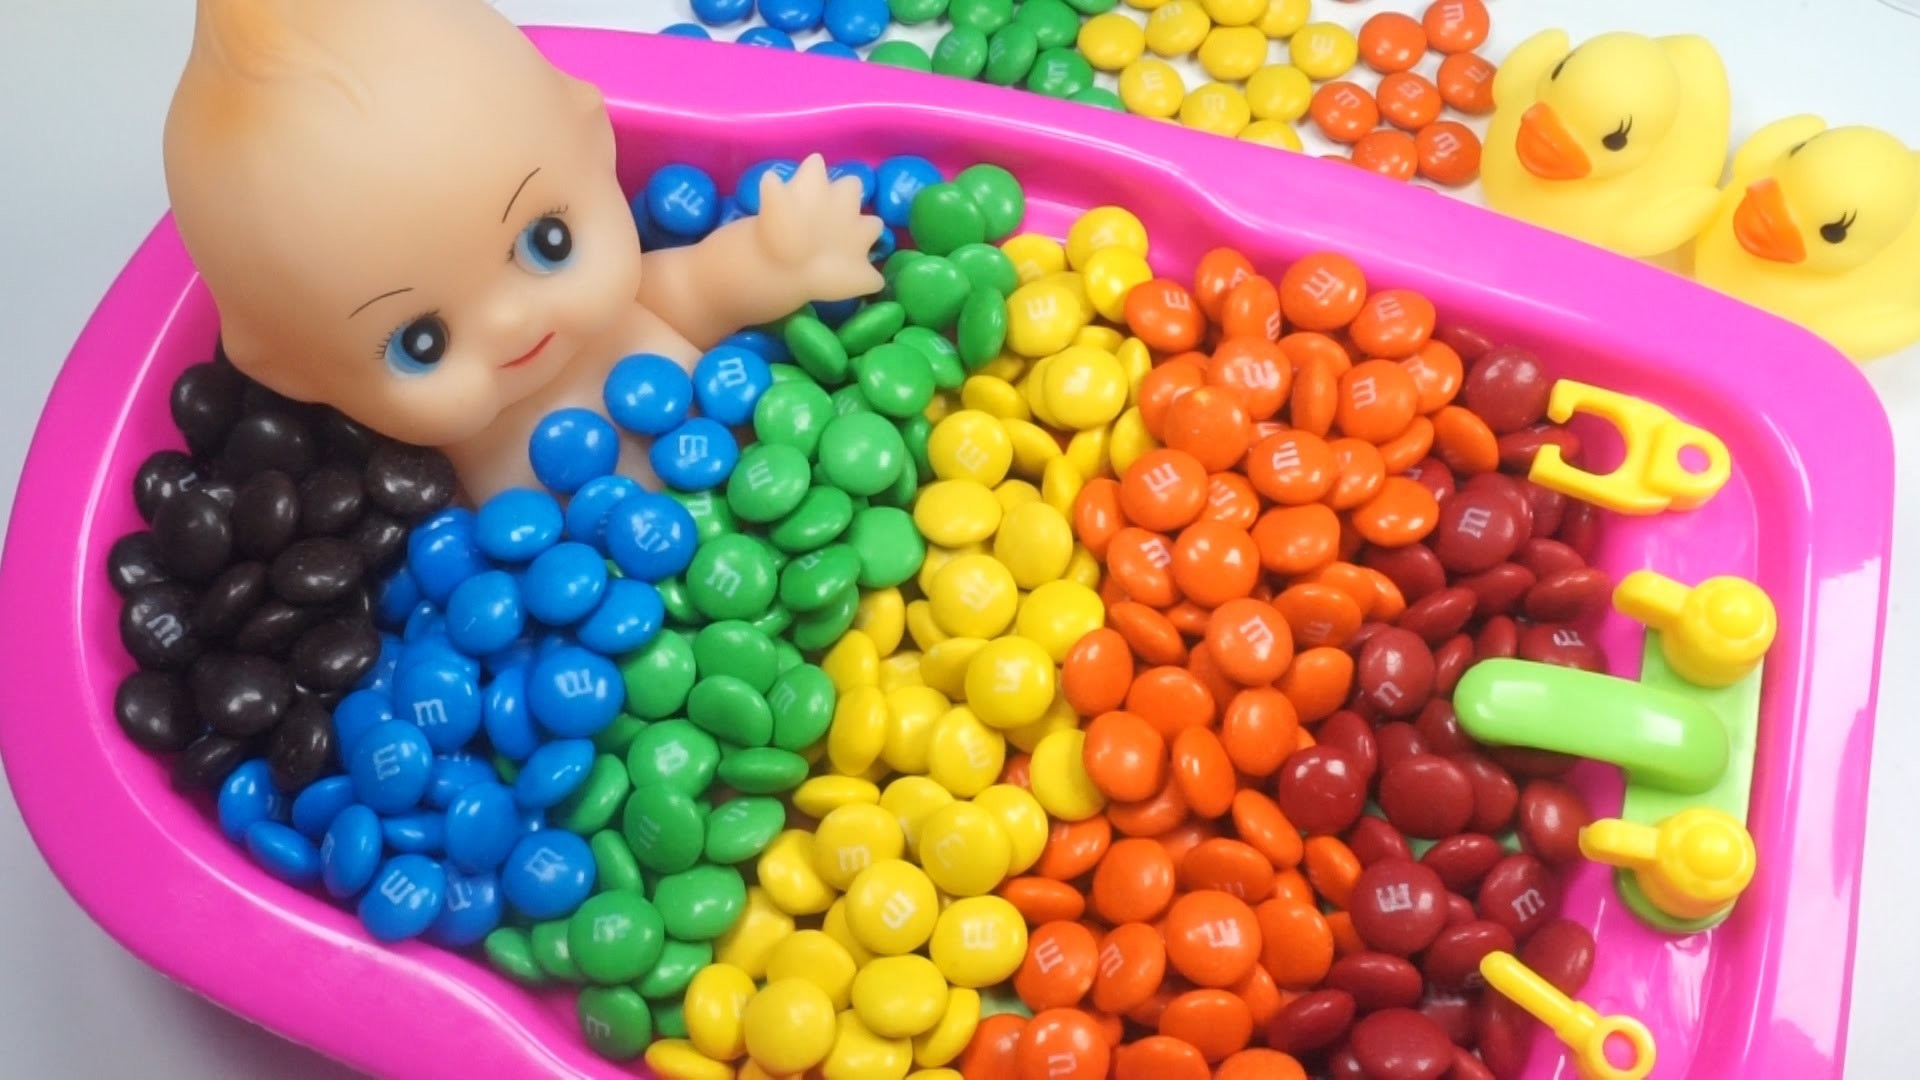 Learn Colors Baby Doll Bath Time M&M's Chocolate Candy How to Bath Baby  Videos Kids Pretend Play – YouTube